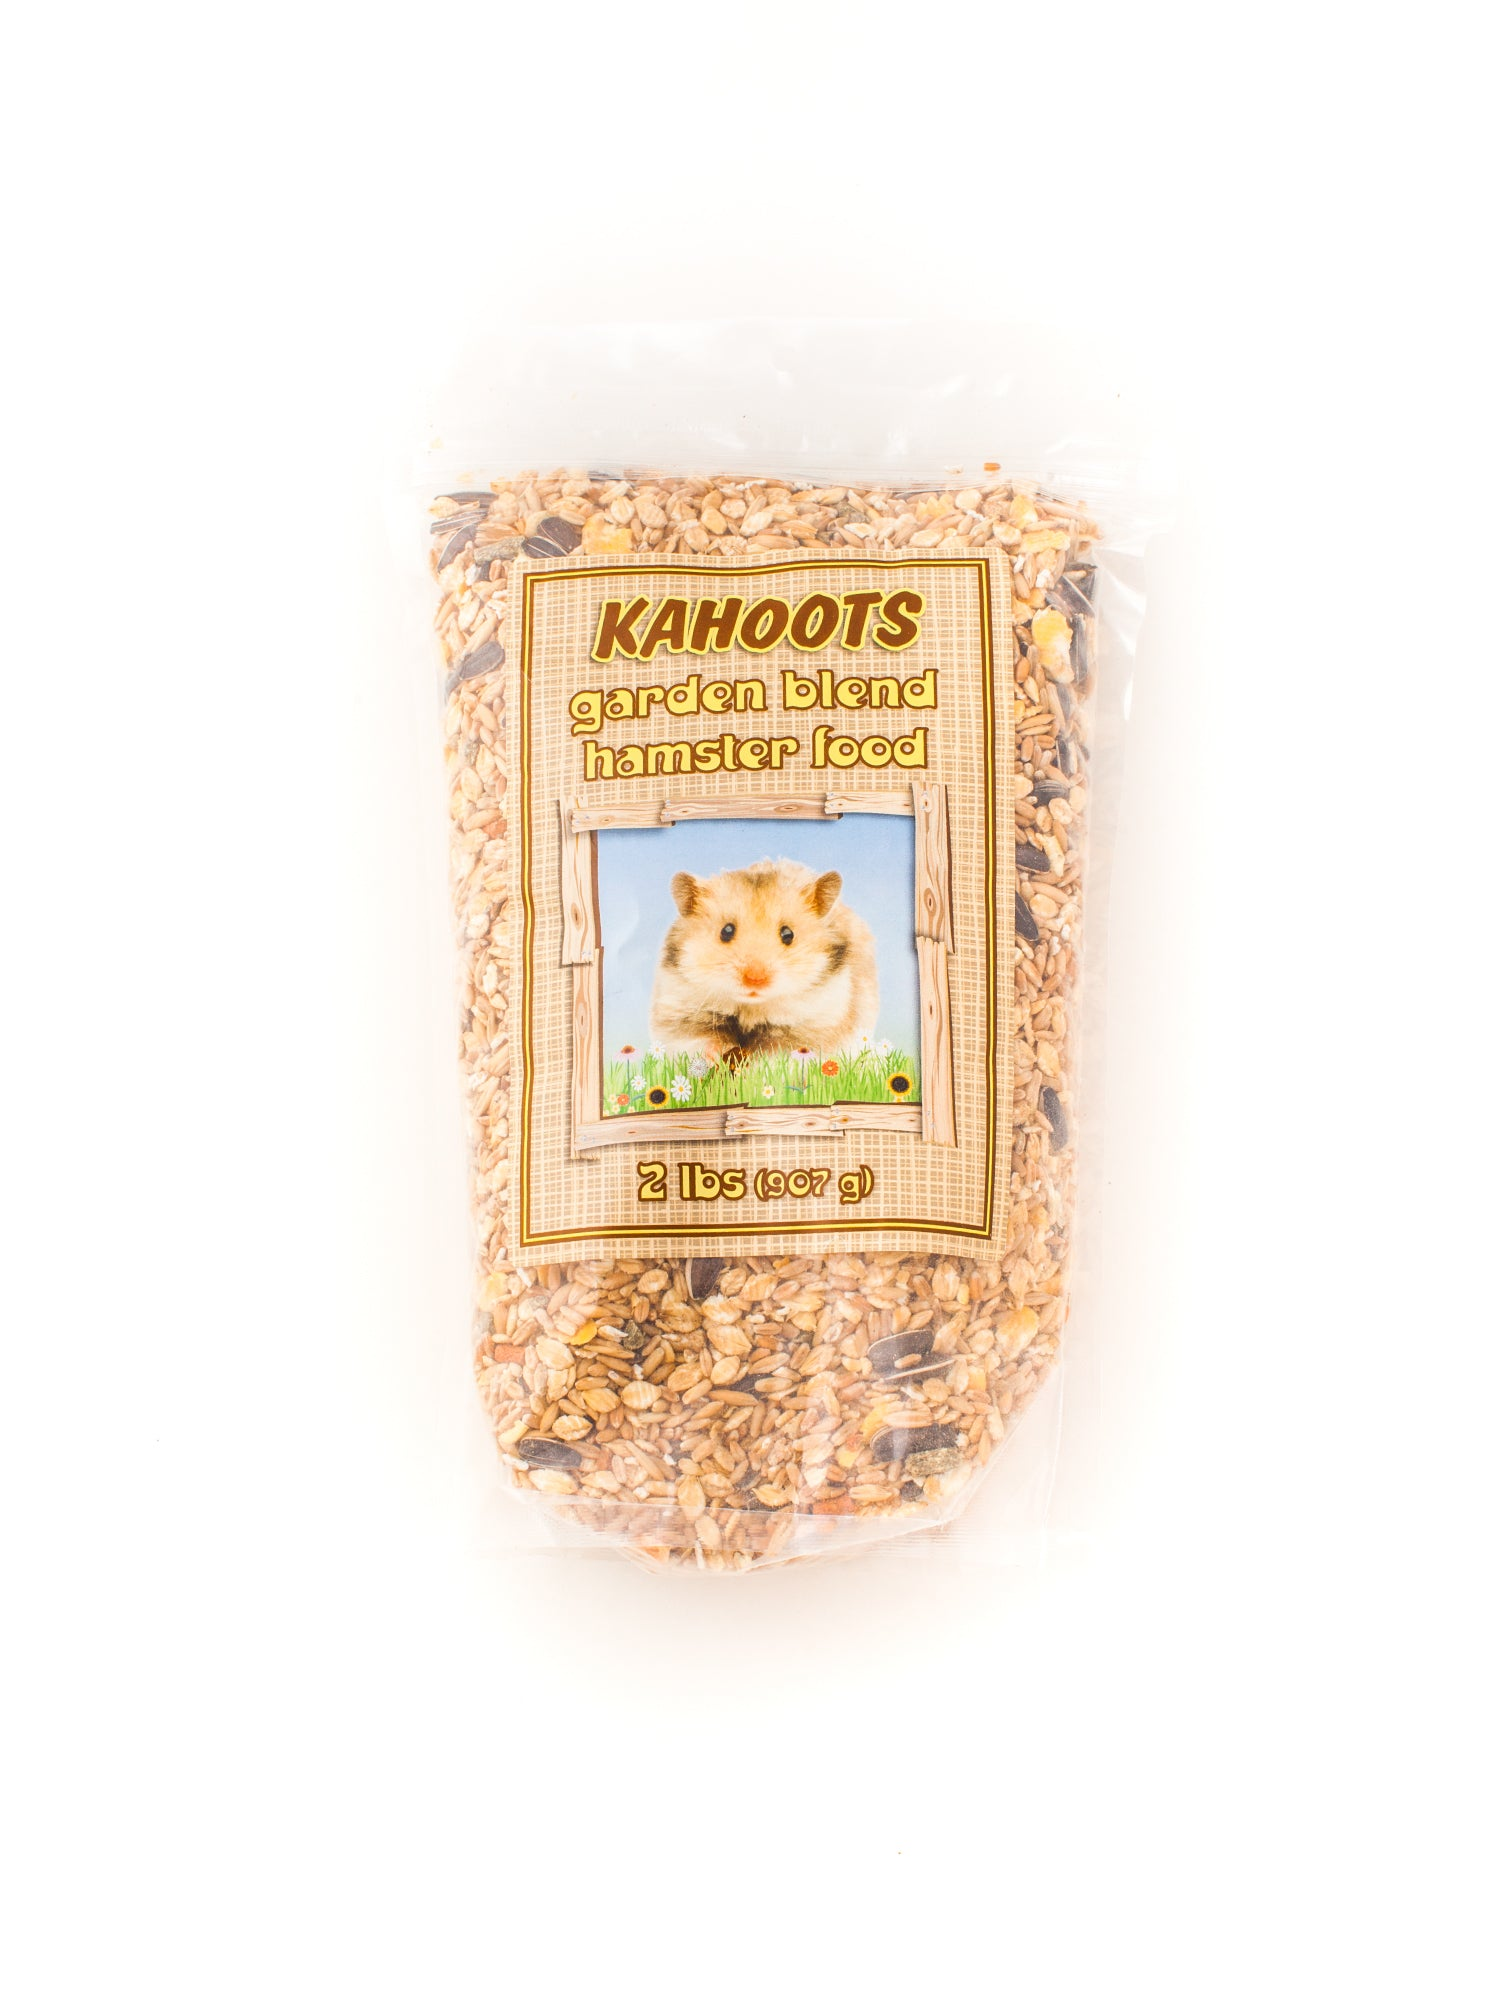 Hamster food blend in bag. Picture of hamster on front label